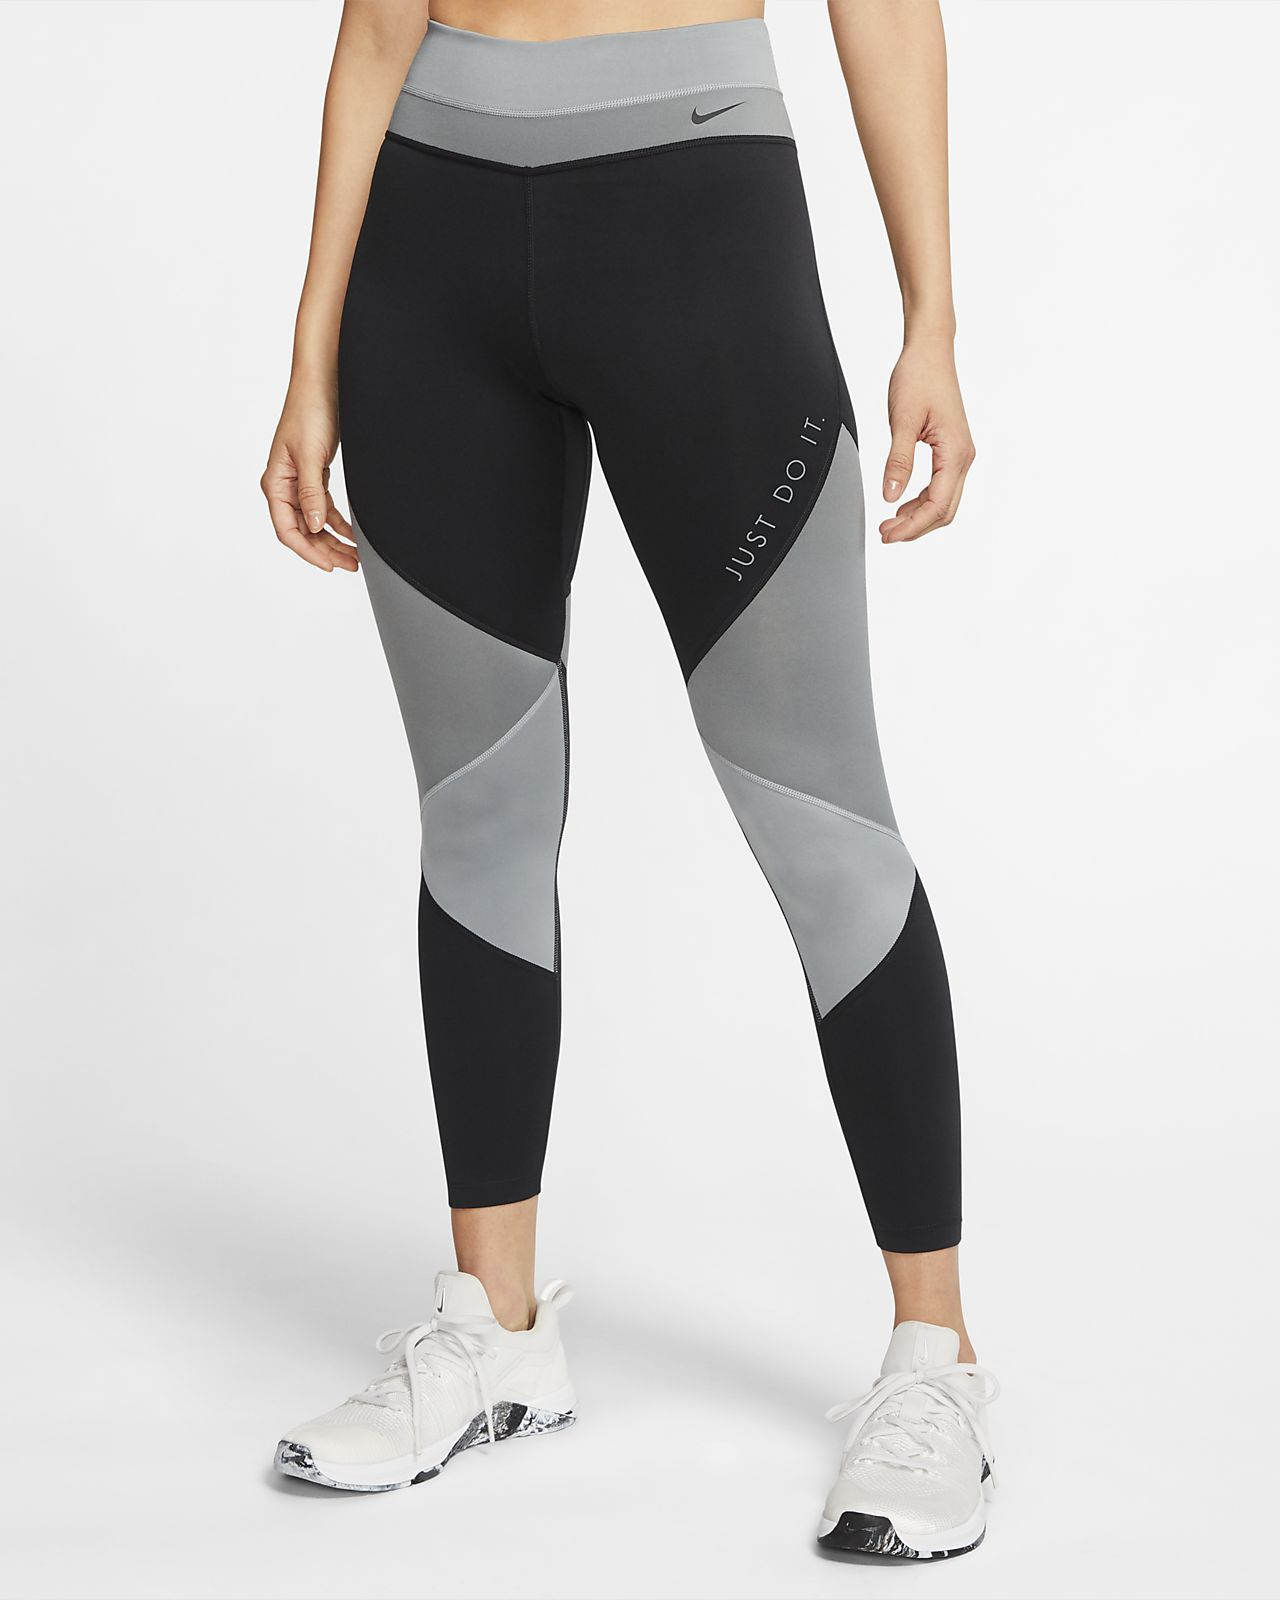 Nike One Women S 7 8 Tights Nike Com In 2020 Nike Women Womens Activewear Fleece Lined Hoodie Free delivery and returns on select orders. nike one women s 7 8 tights nike com